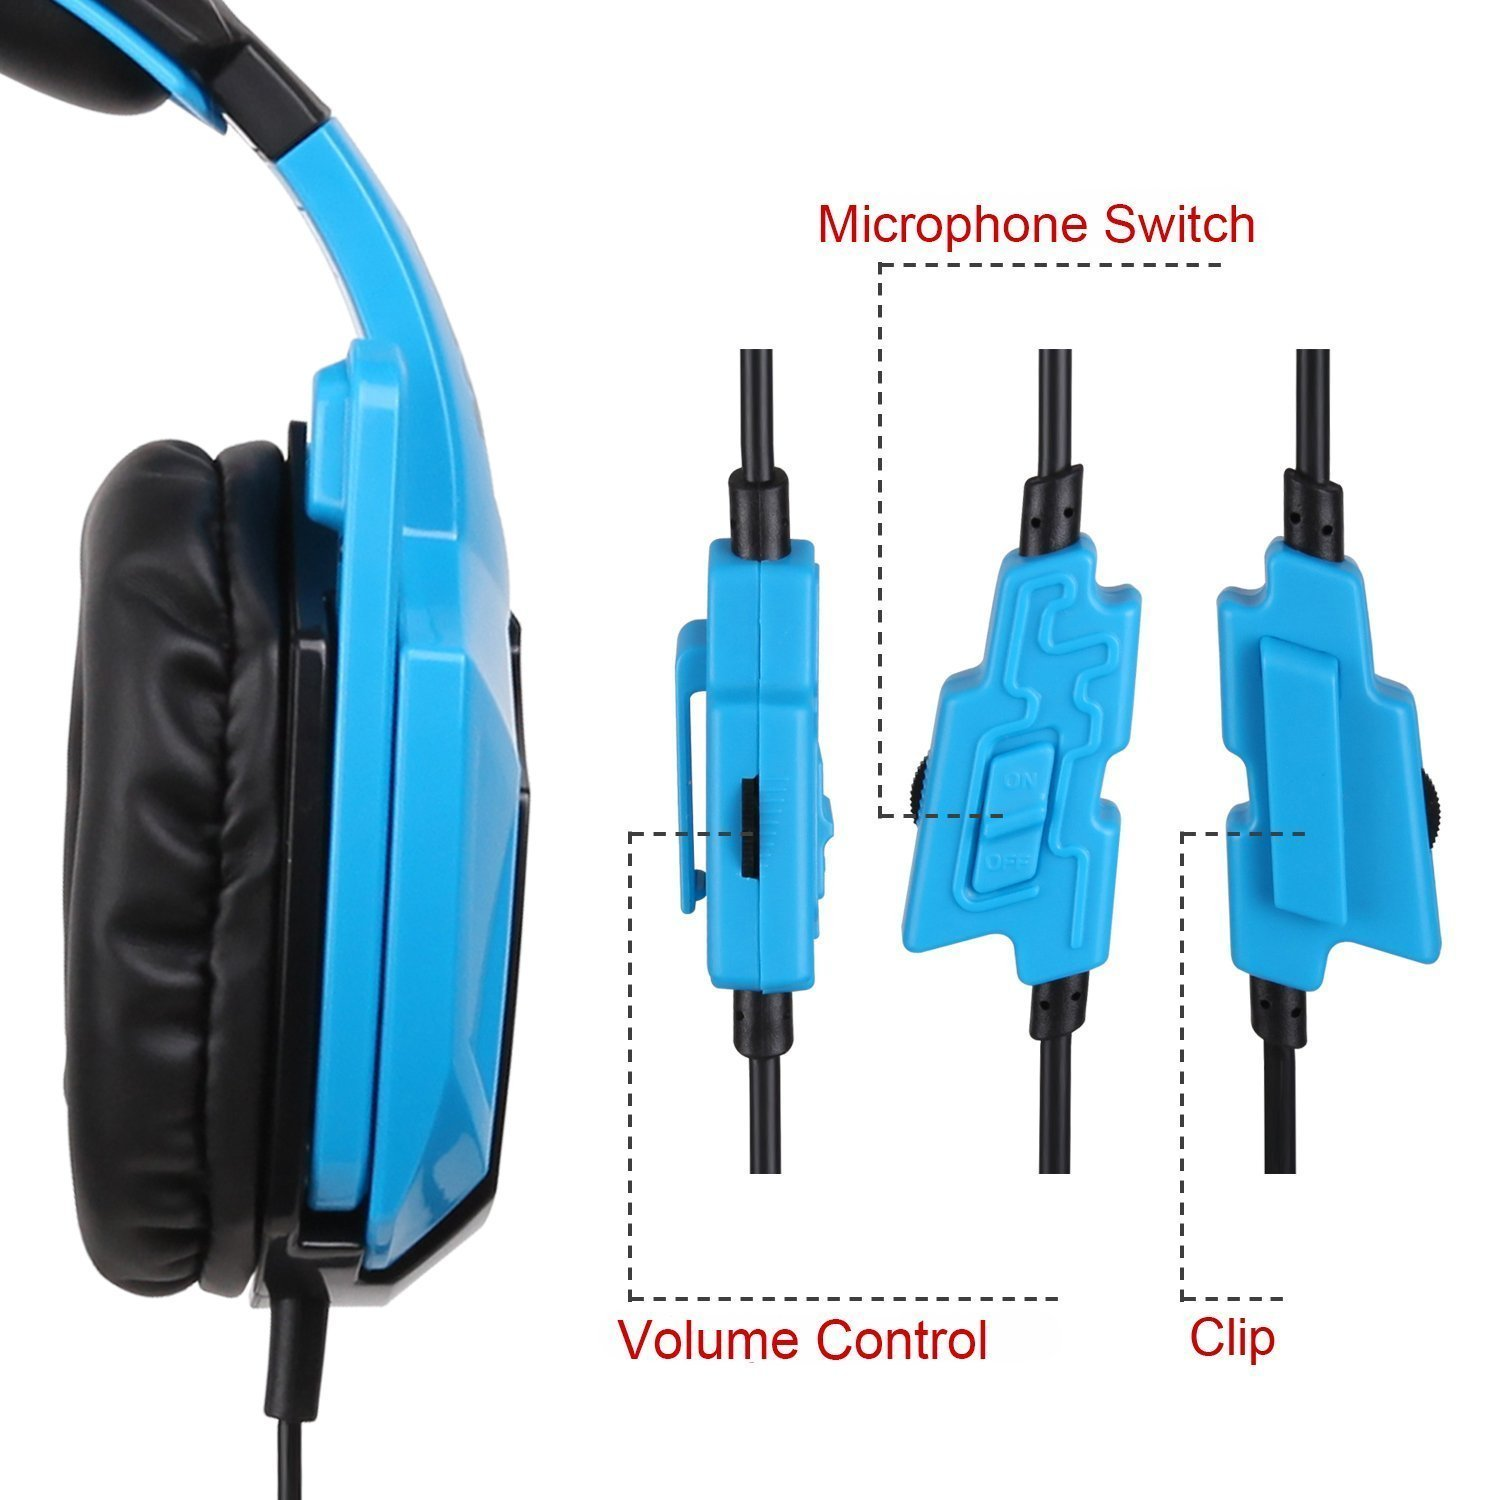 71tre7ZrcNL._SL1500_ amazon com sades 5 in 1 stereo gaming headset (sa920) blue Headphone with Mic Wiring Diagram at creativeand.co